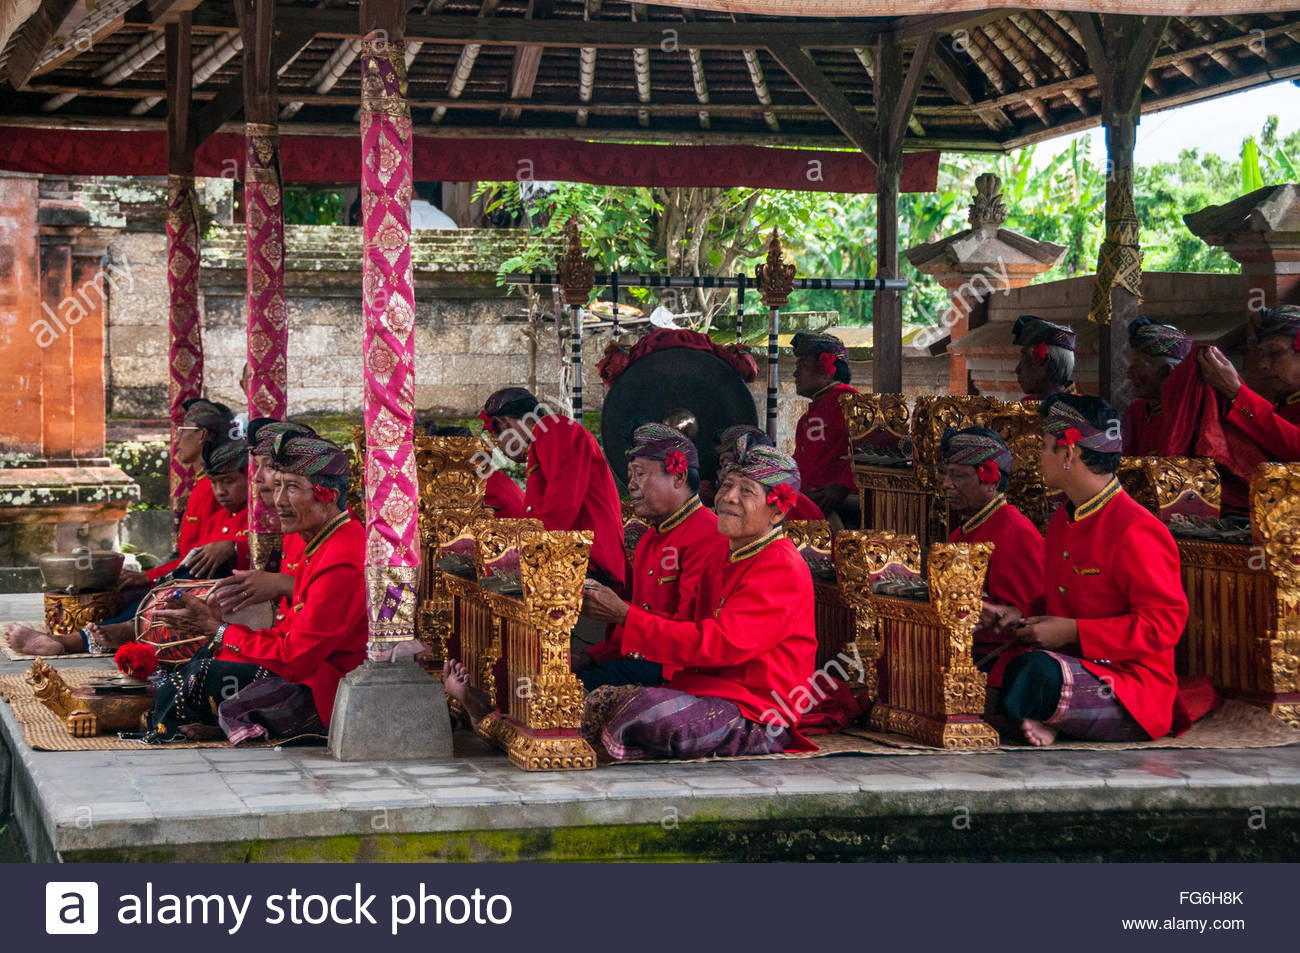 bali musical instrument photos bali musical instrument images alamy. Black Bedroom Furniture Sets. Home Design Ideas